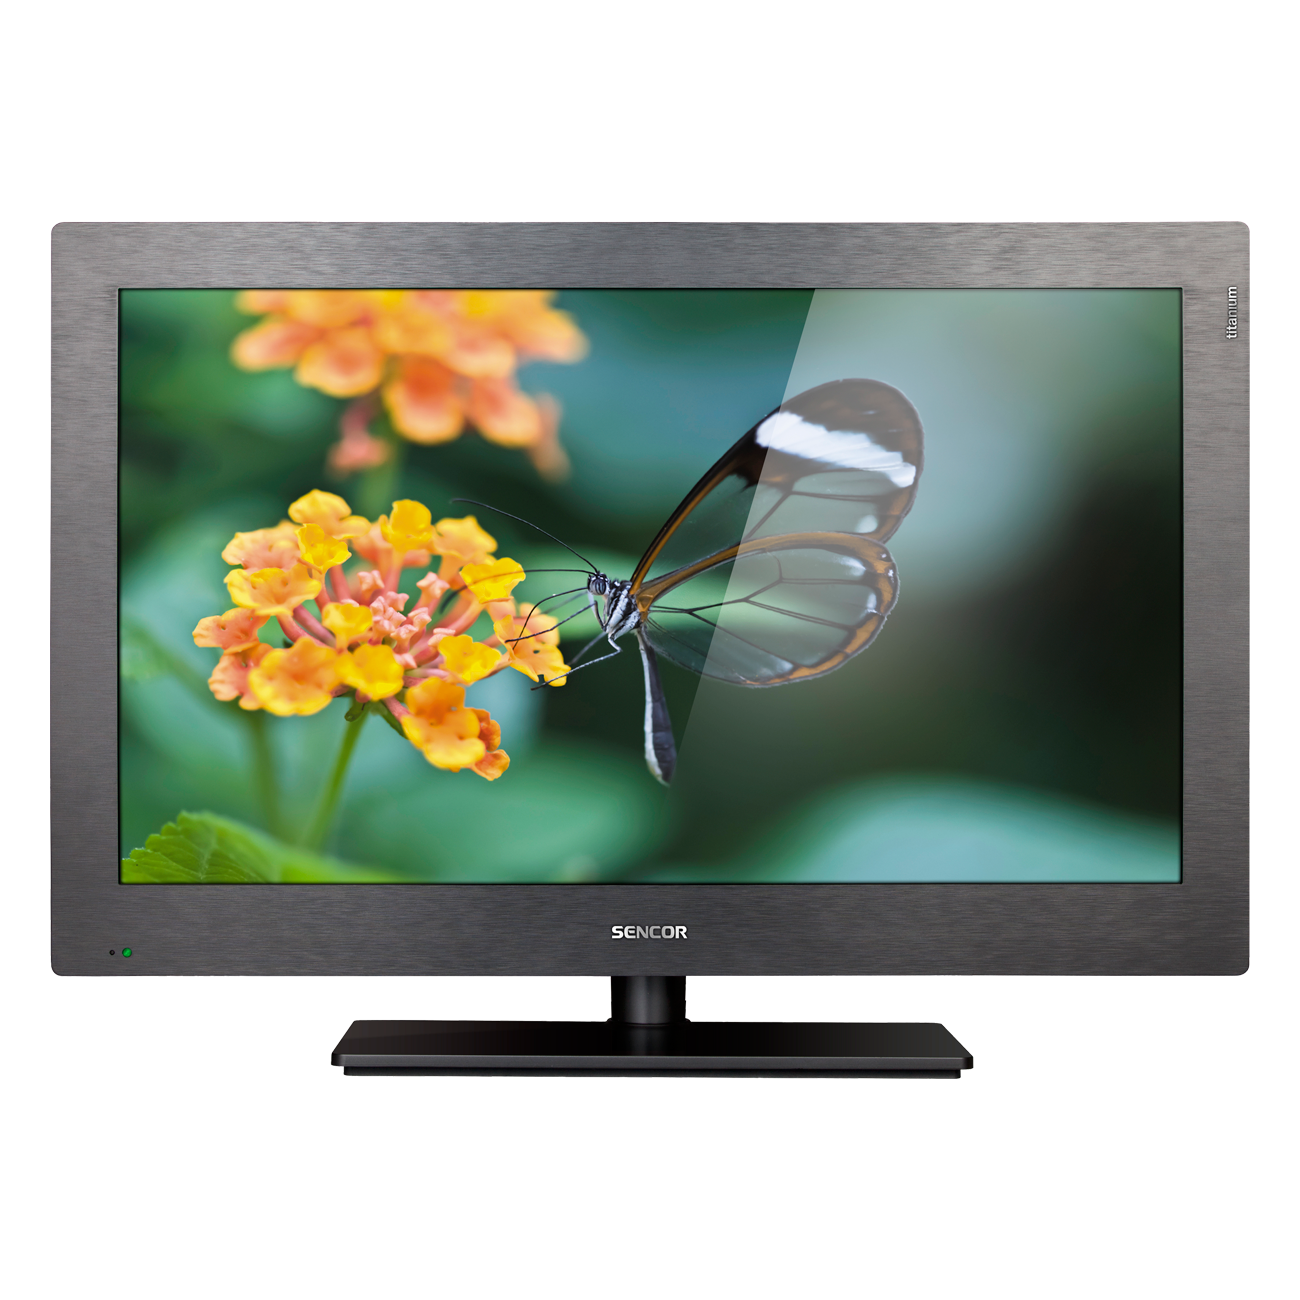 SLE 24F50T titanium Full HD LED LCD TV